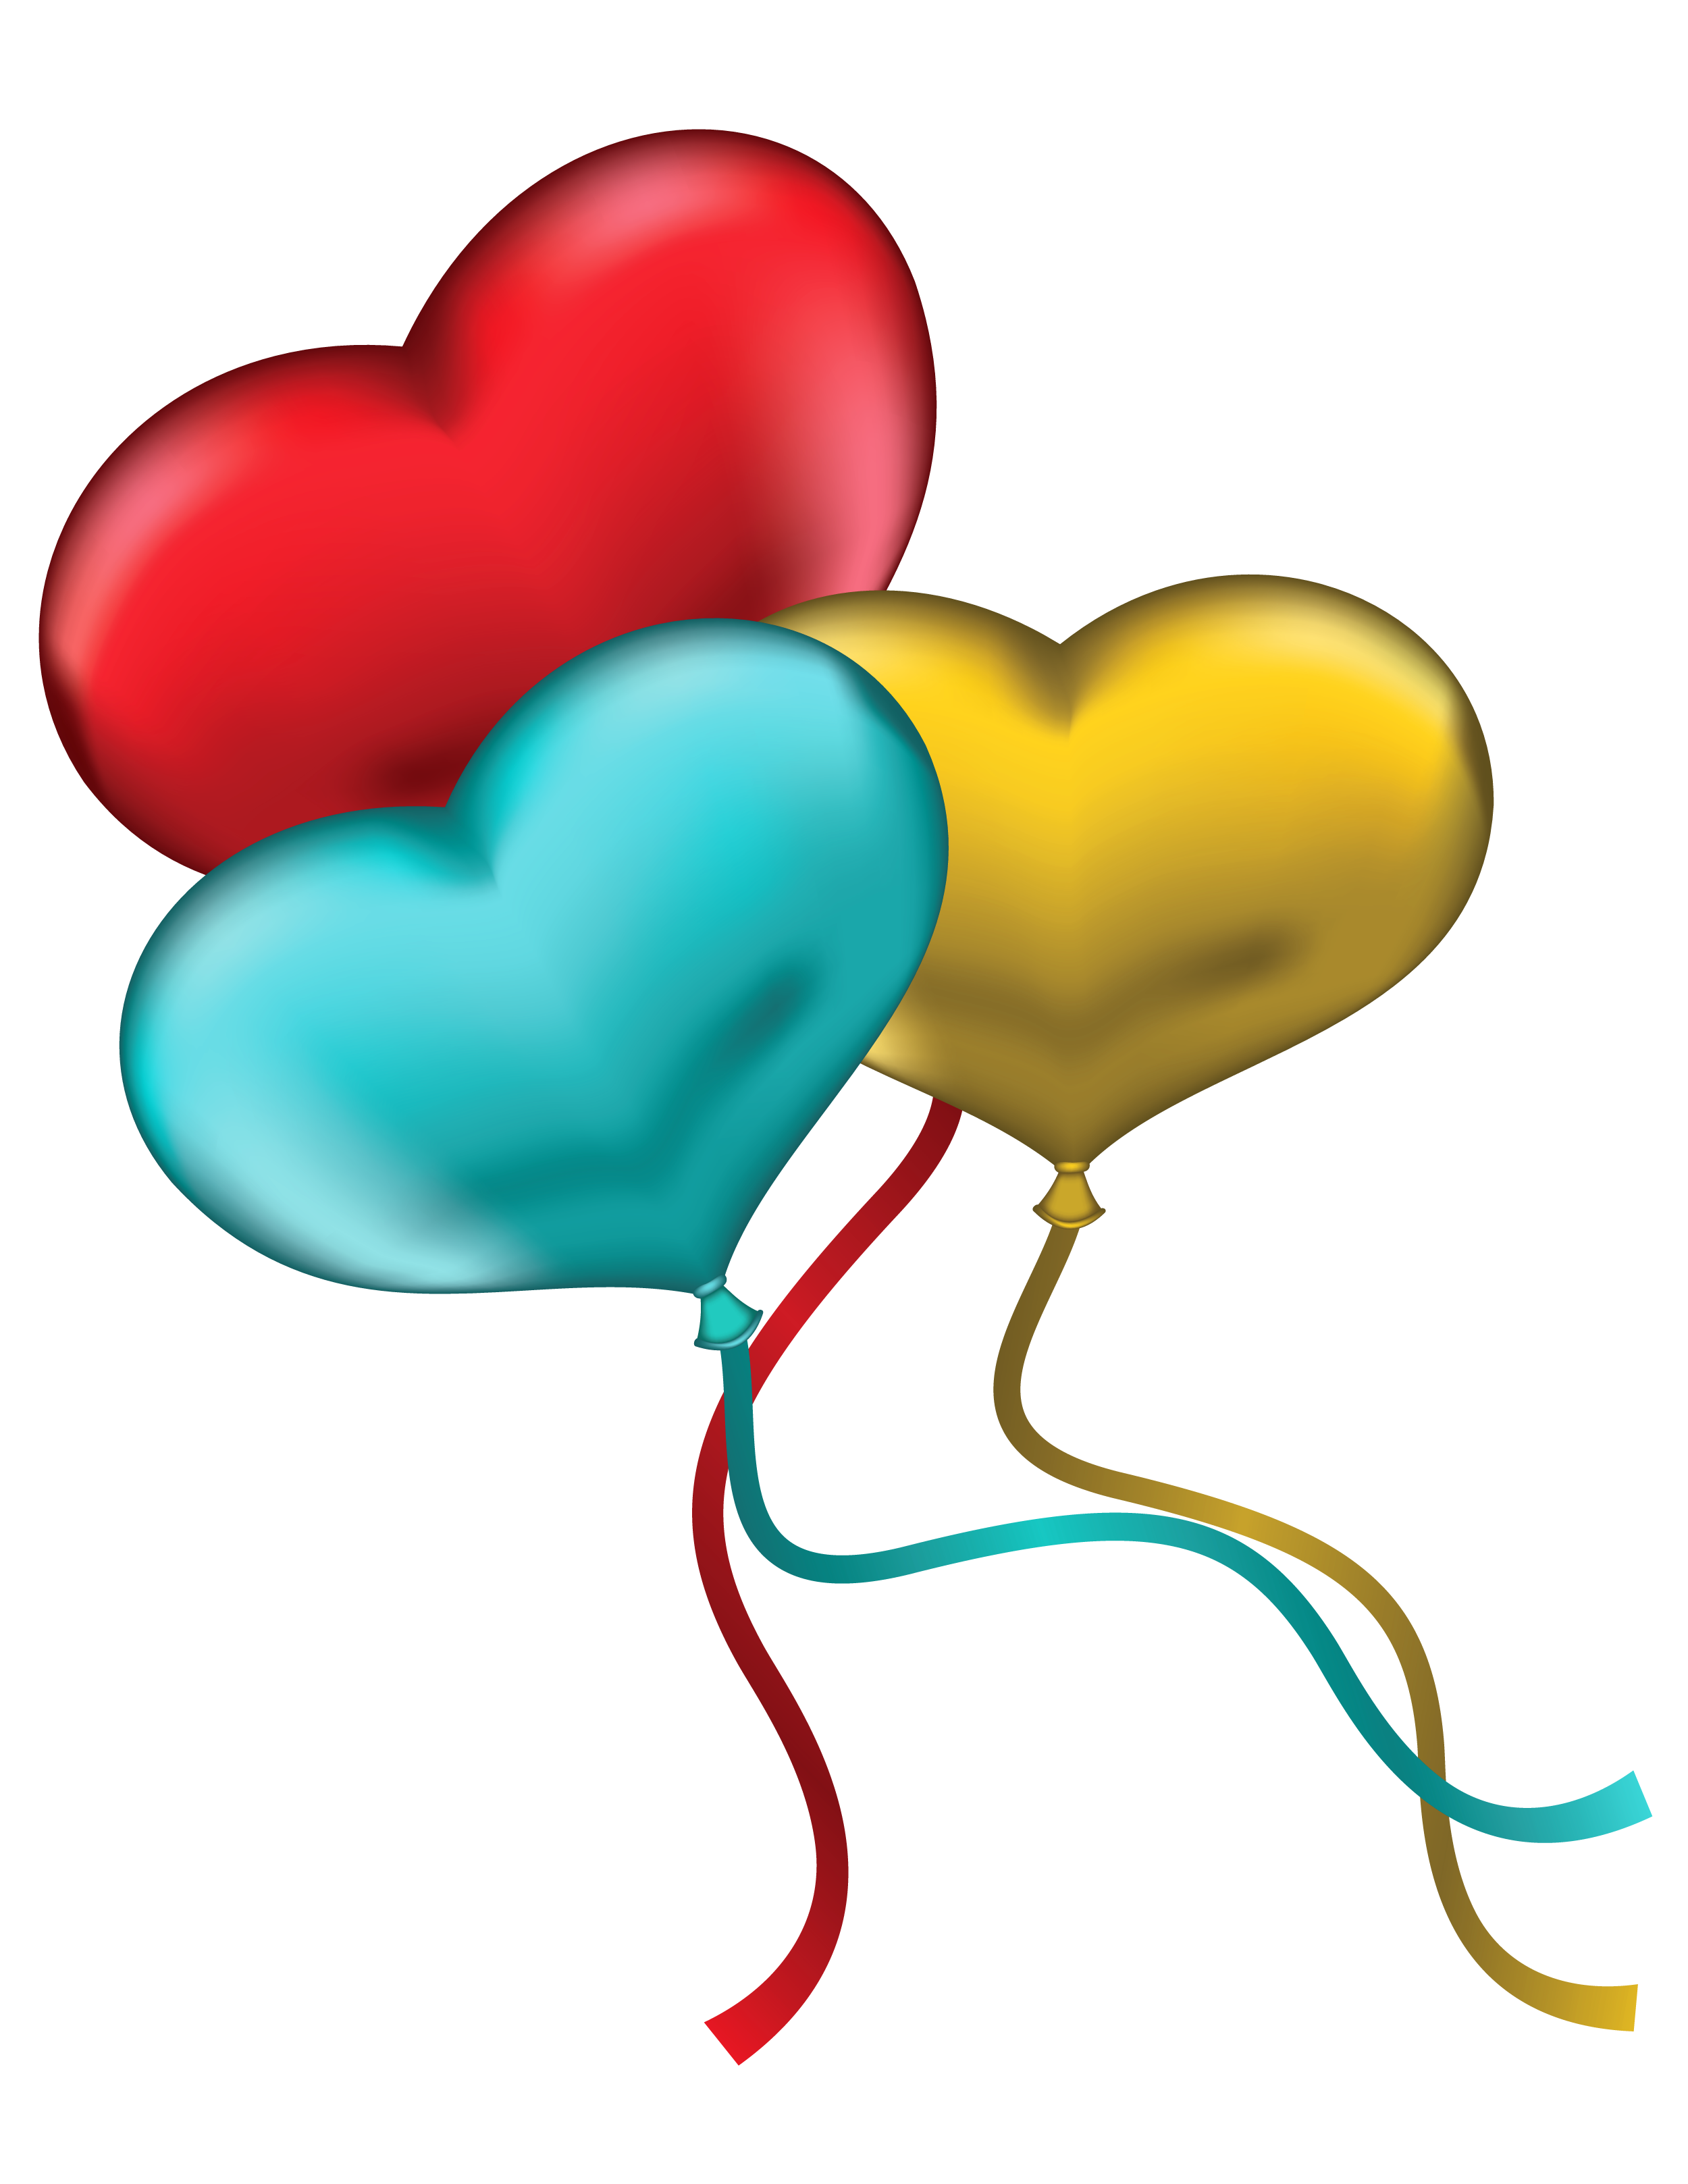 2500x3235 Red Blue And Yellow Heart Balloons Png Clipart Pictureu200b Gallery